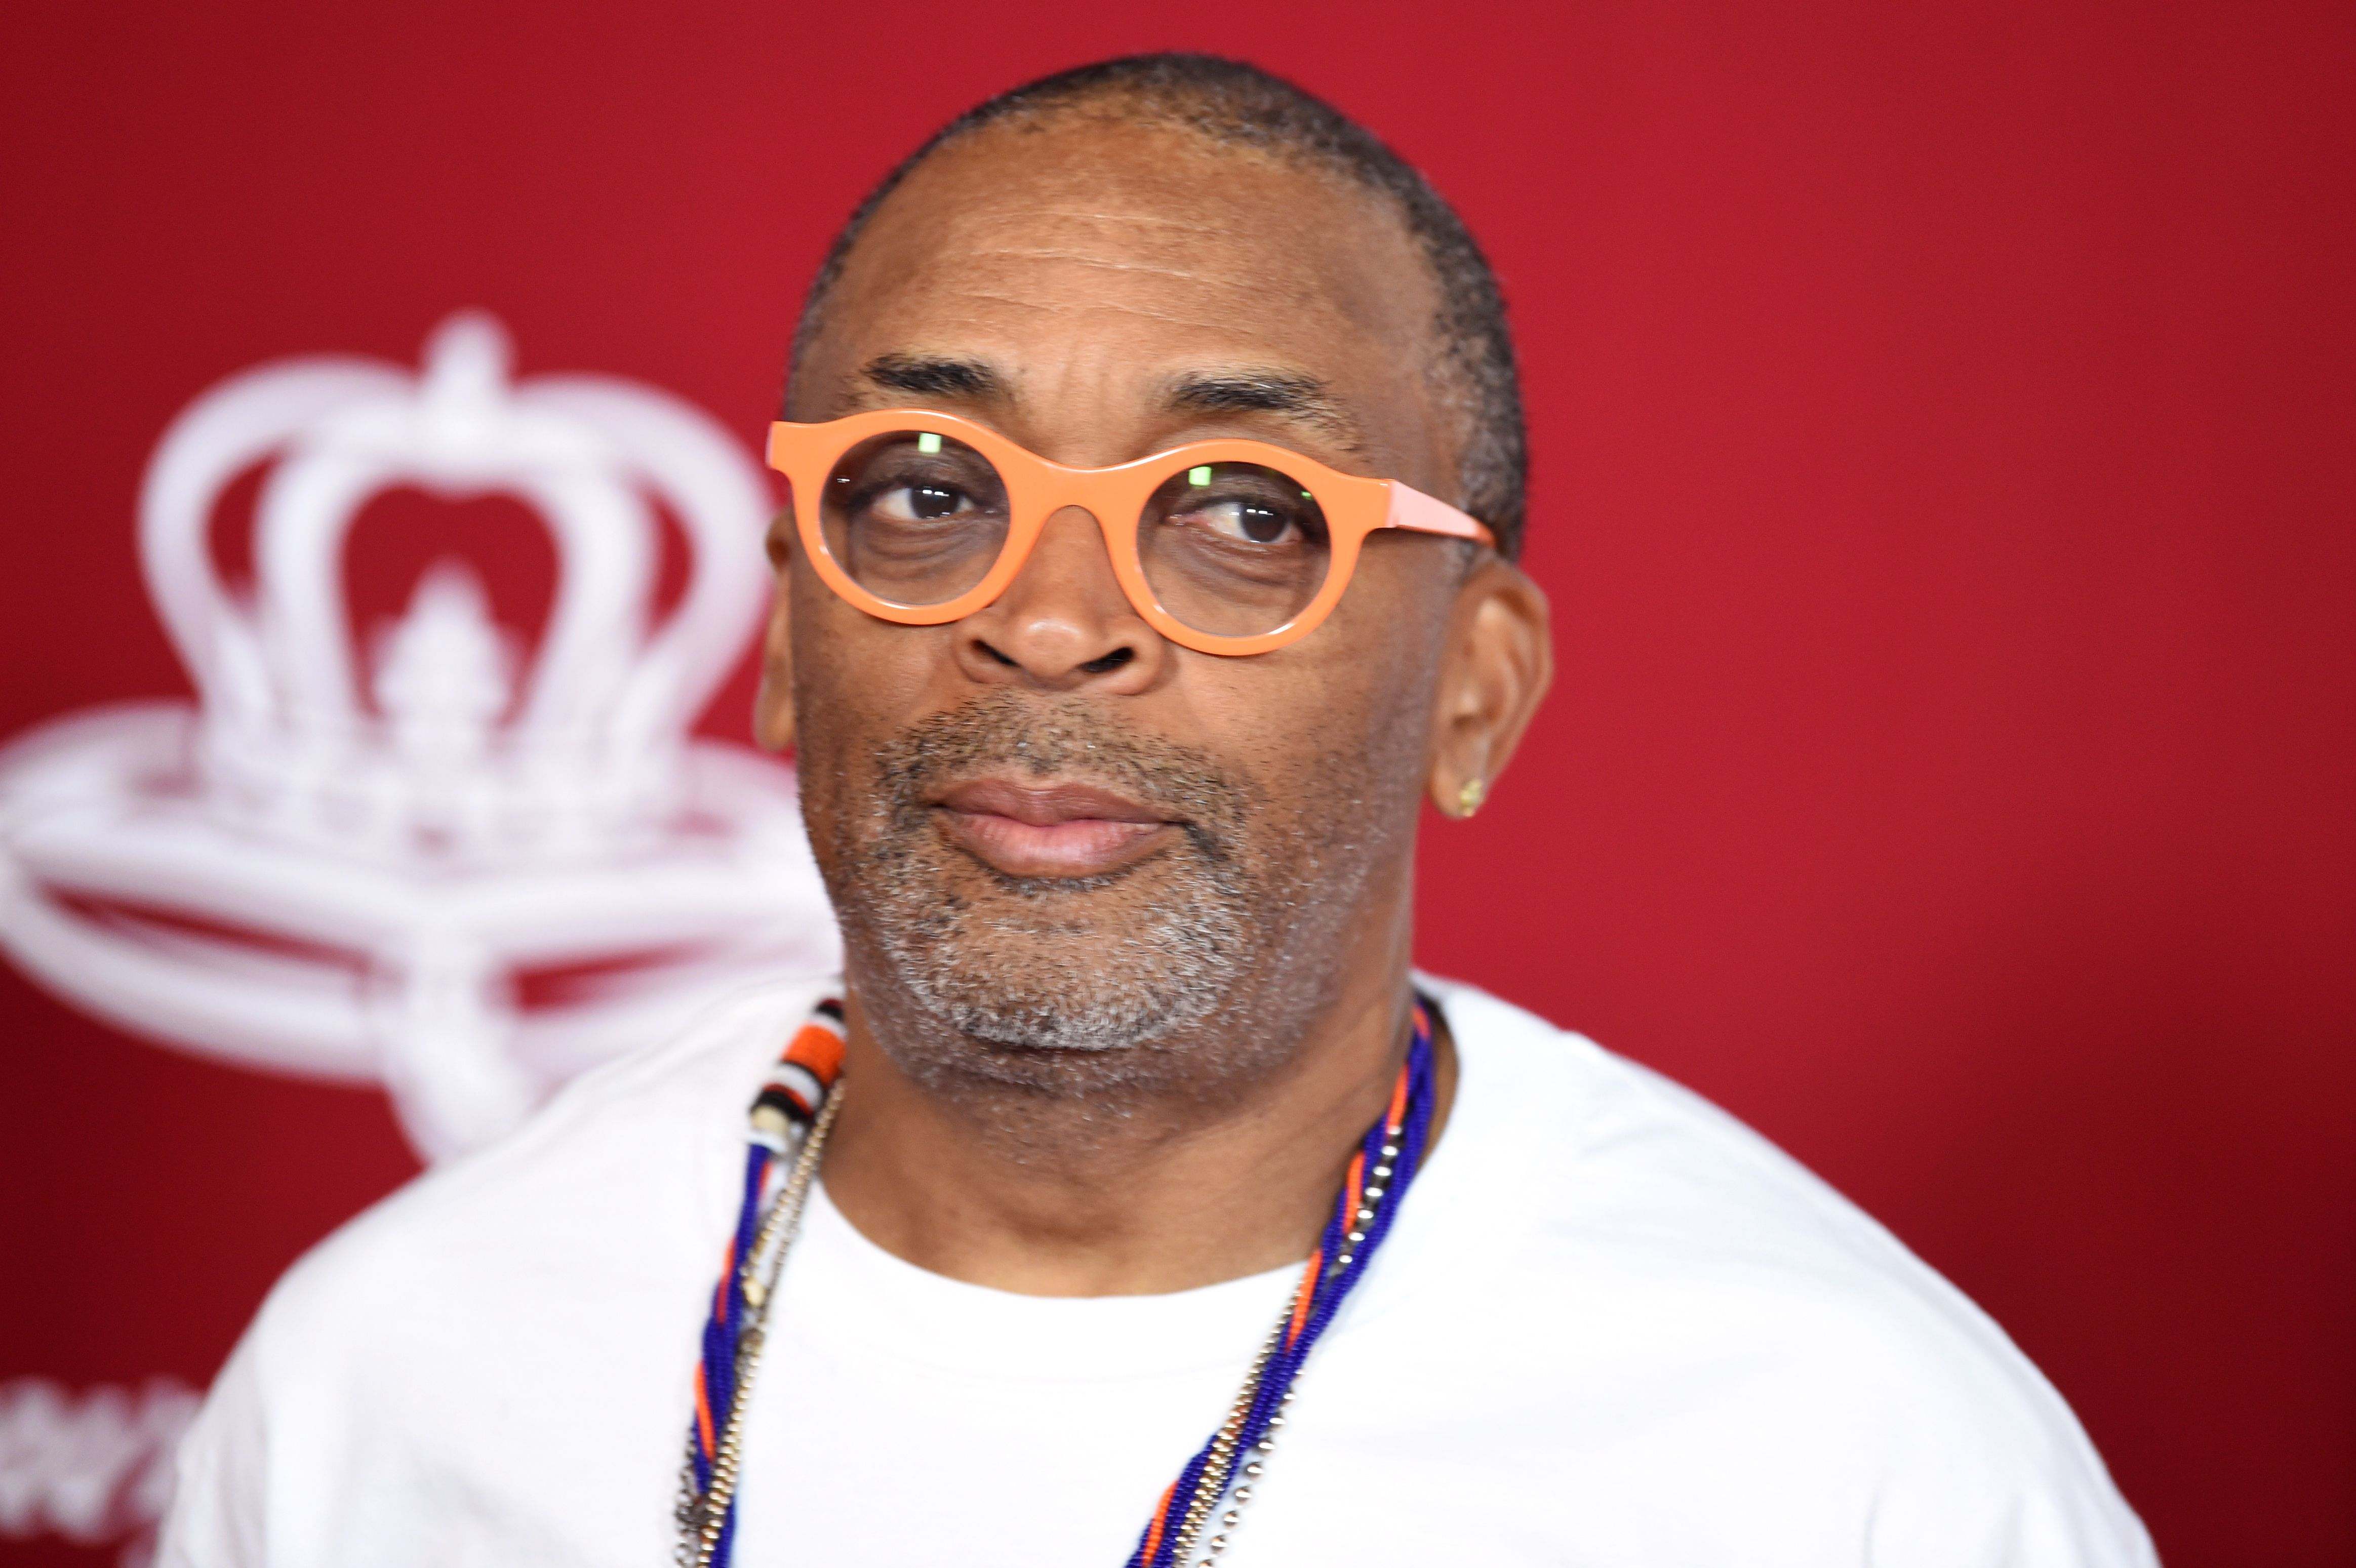 Spike Lee Apologizes for Defending Woody Allen Against Cancel Culture |  IndieWire